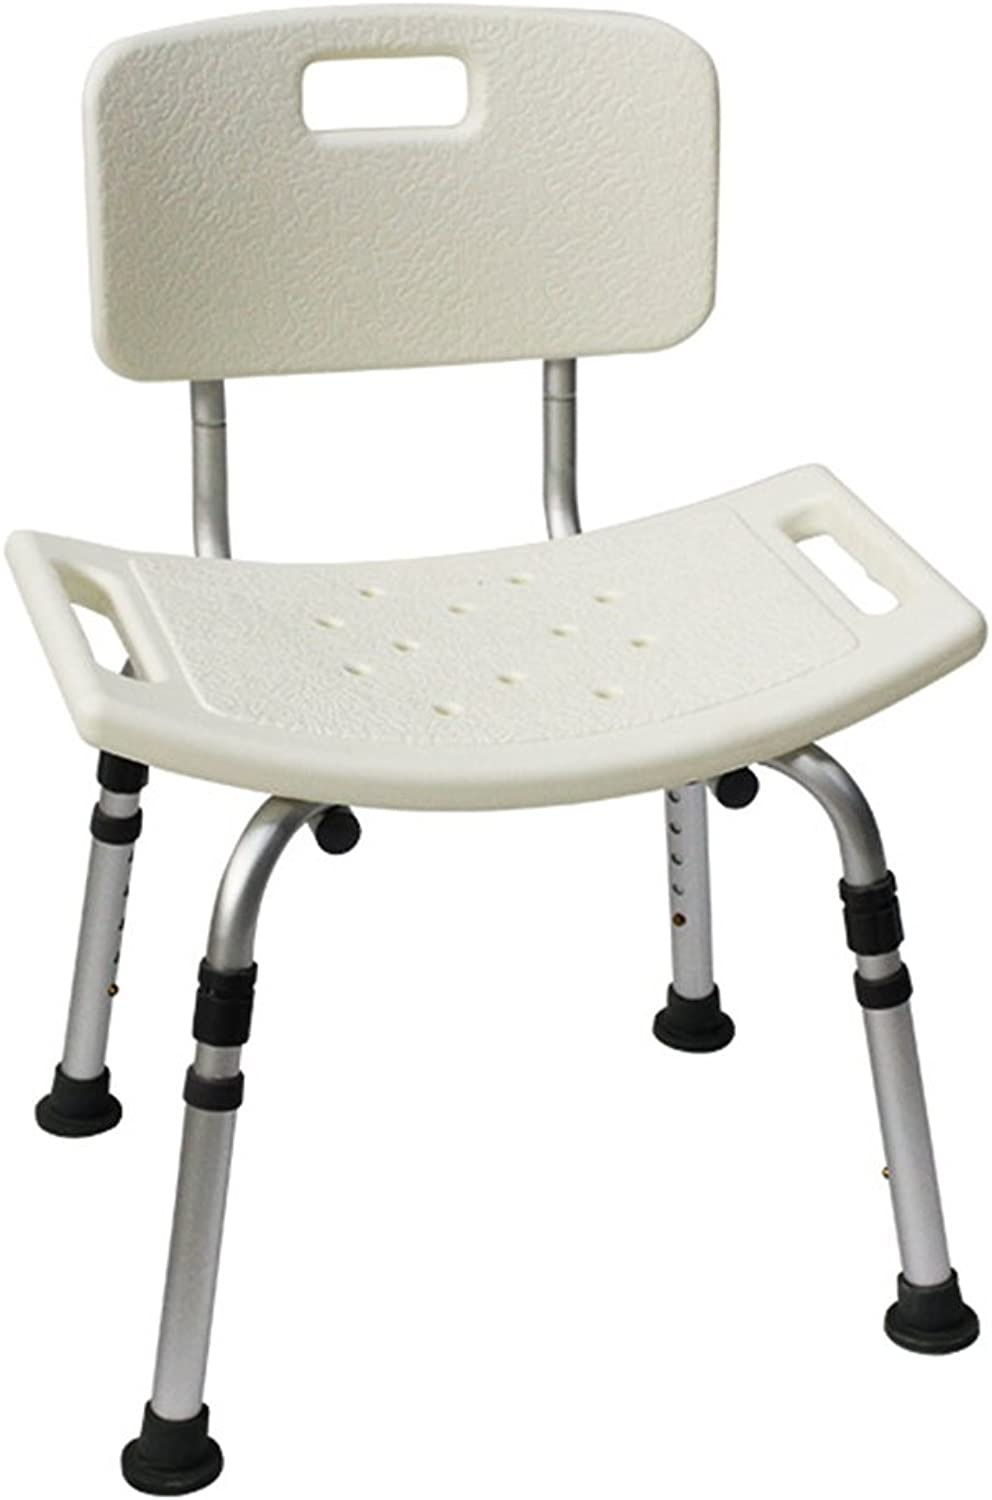 Bathroom Chair Old Man Shower Chair Disabled Bath Chair Pregnant Woman Shower Chair Aluminum Alloy Non-Slip Bathroom Bath Stool Shower Chair Loading Weight 130kg